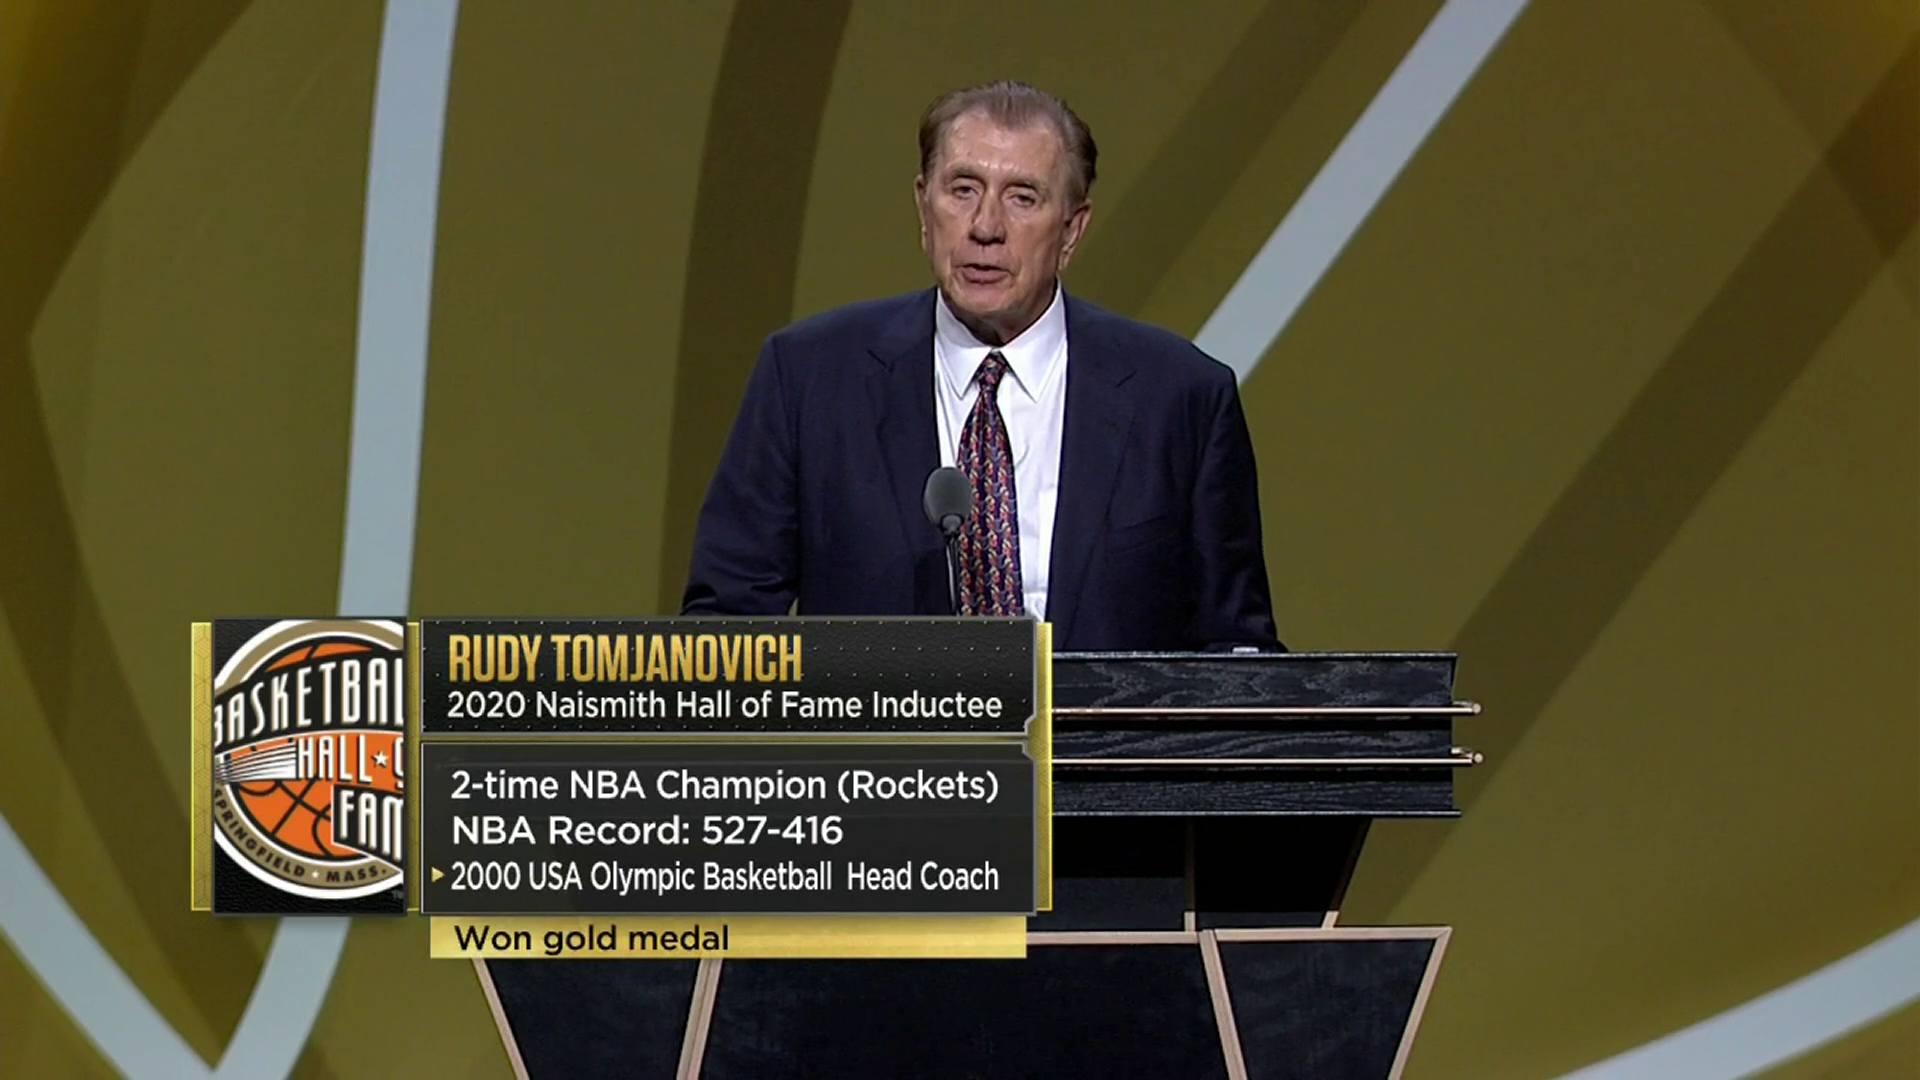 Rudy Tomjanovich Hall of Fame Speech